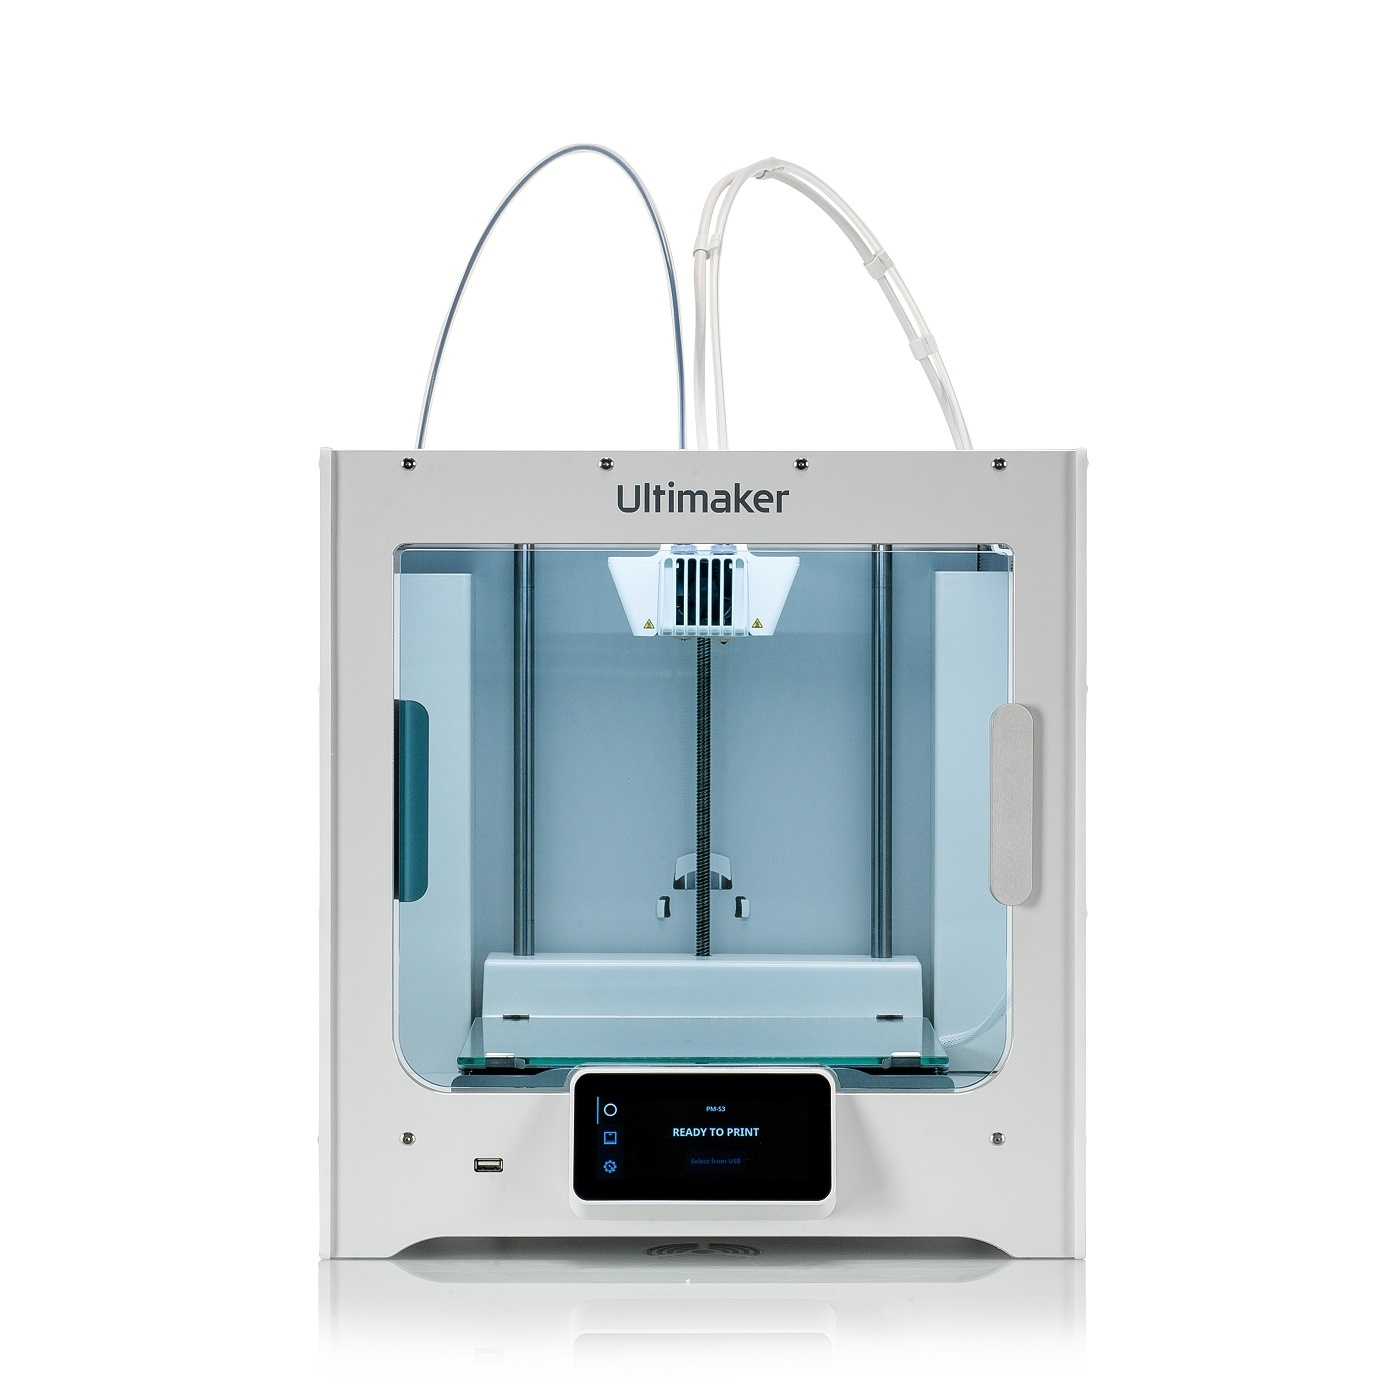 Ultimaker Ultimaker S3 incl. btw.